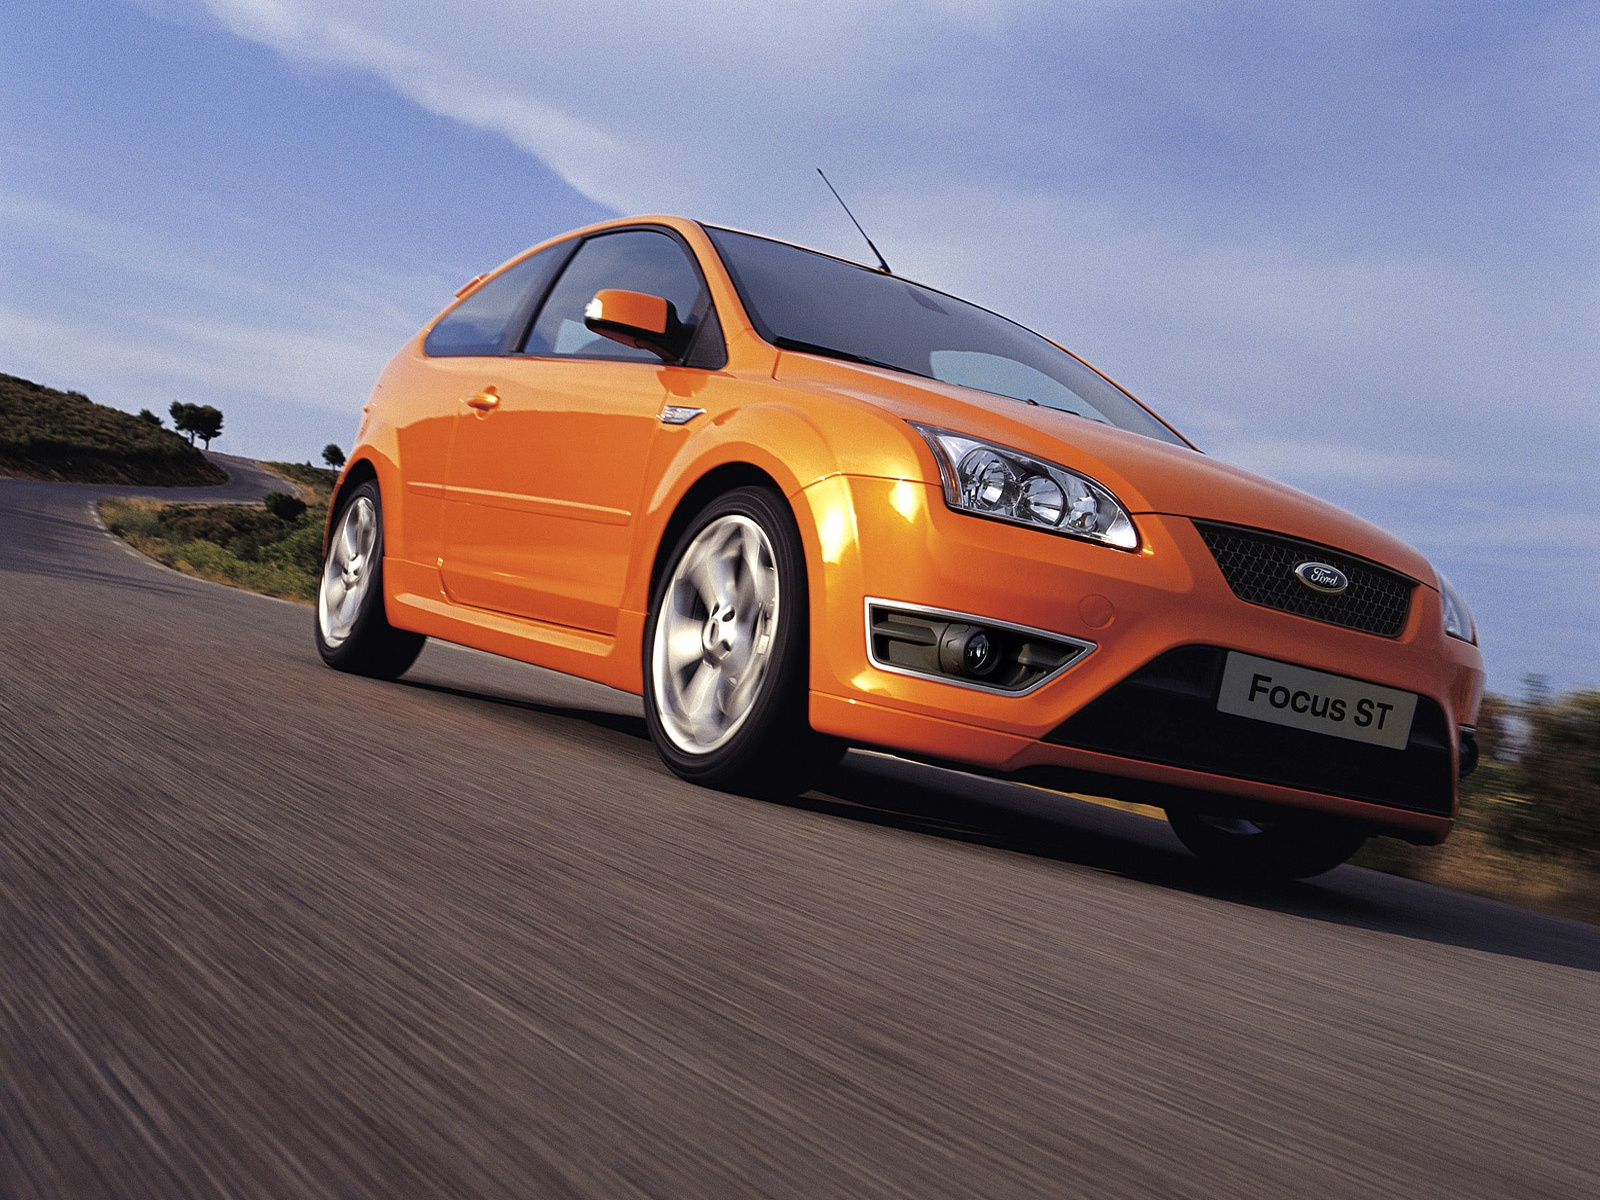 Ford Focus ST 2 wallpapers Ford Focus ST 2 stock photos 1600x1200